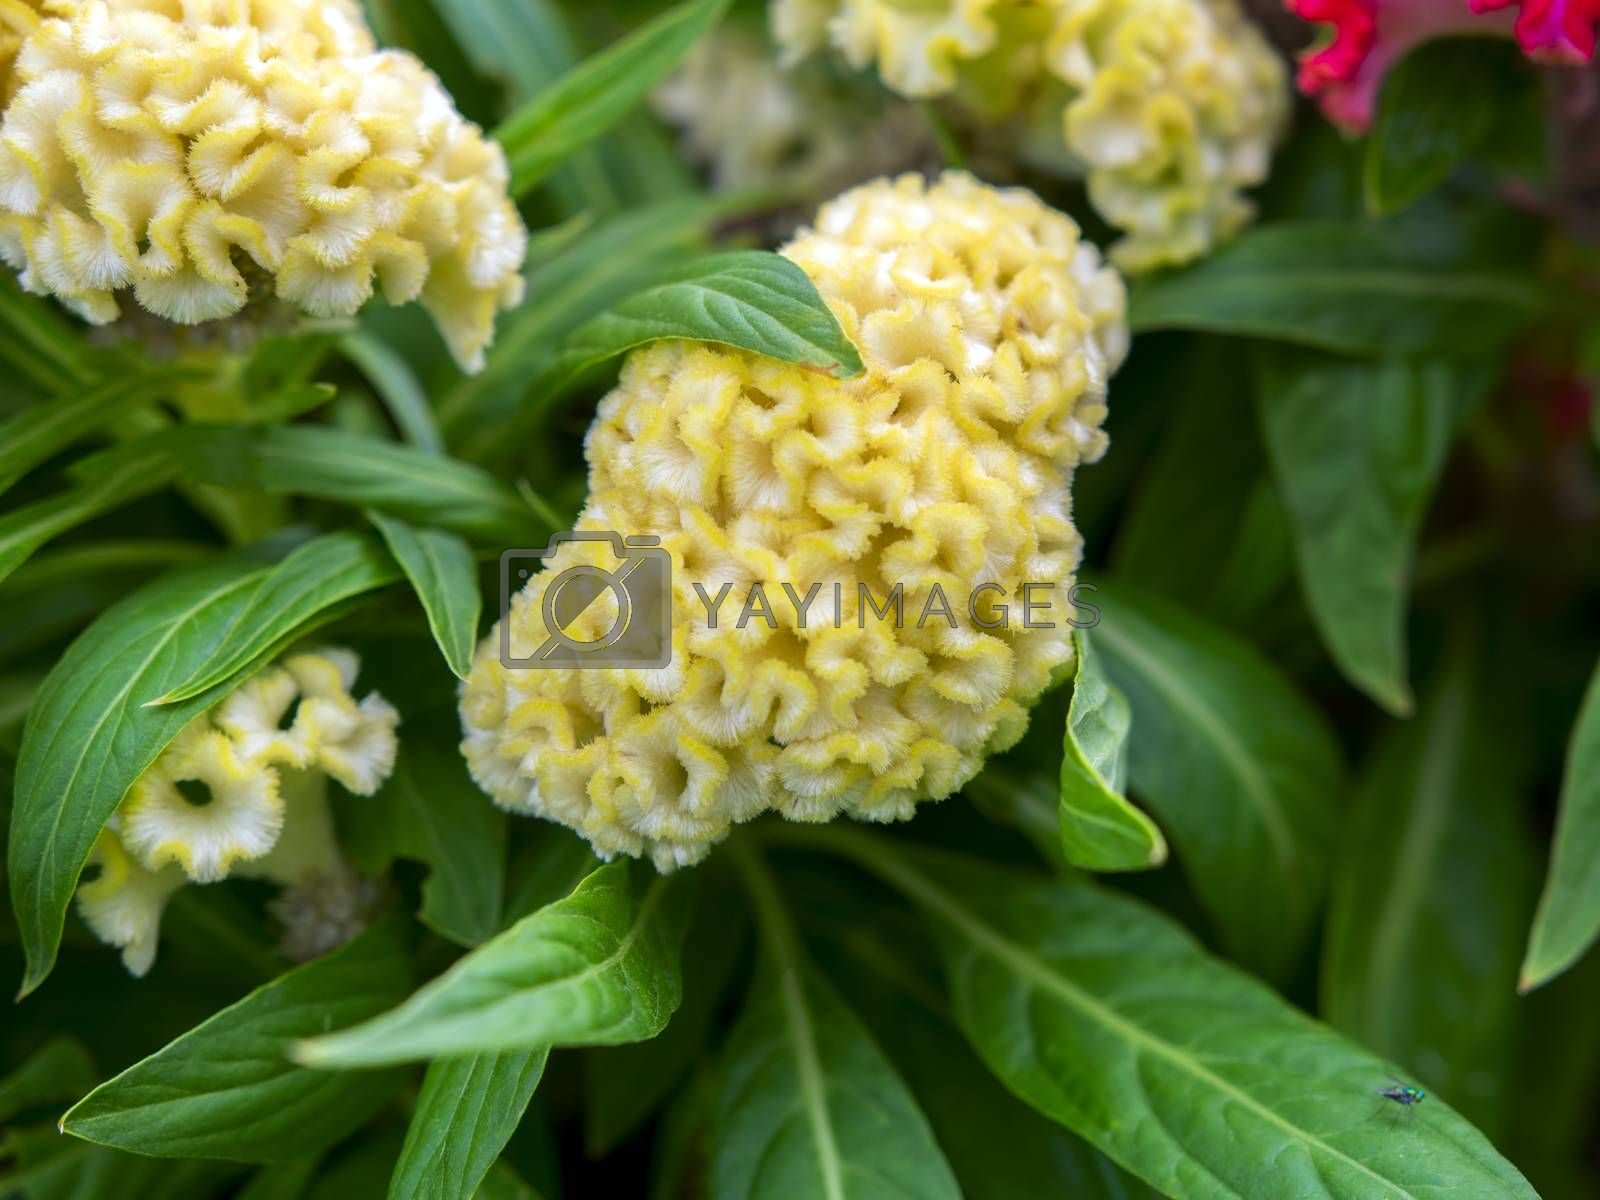 Royalty free image of Yellow Toreador. by GNNick